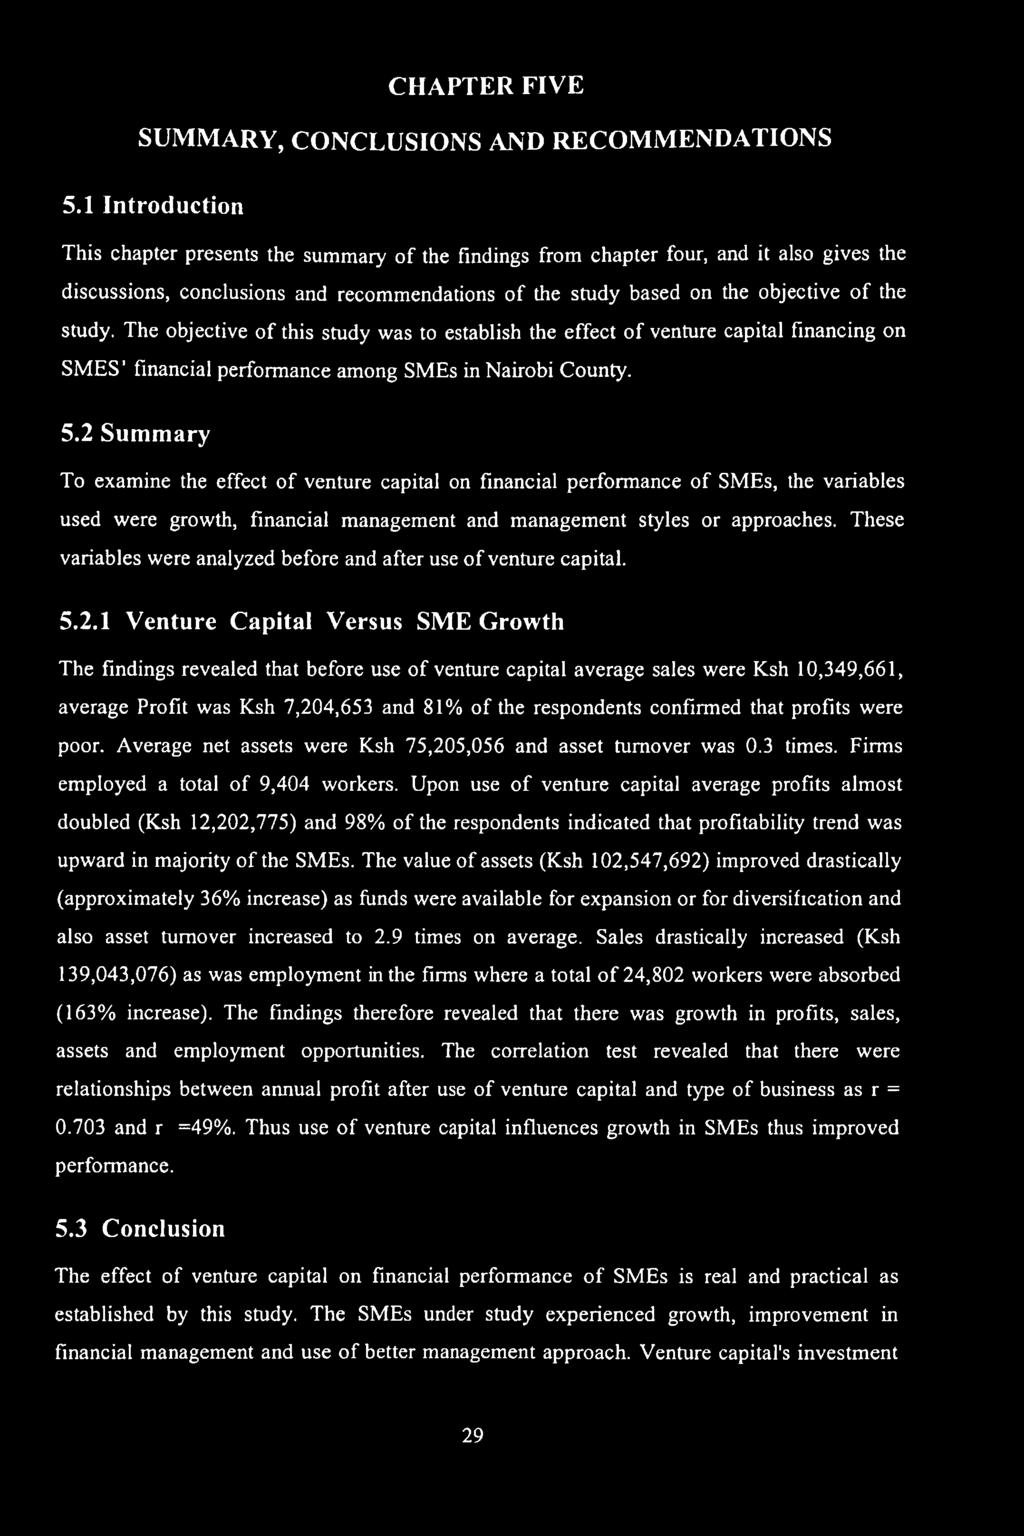 THE EFFECT OF VENTURE CAPITAL ON FINANCIAL PERFORMANCE OF